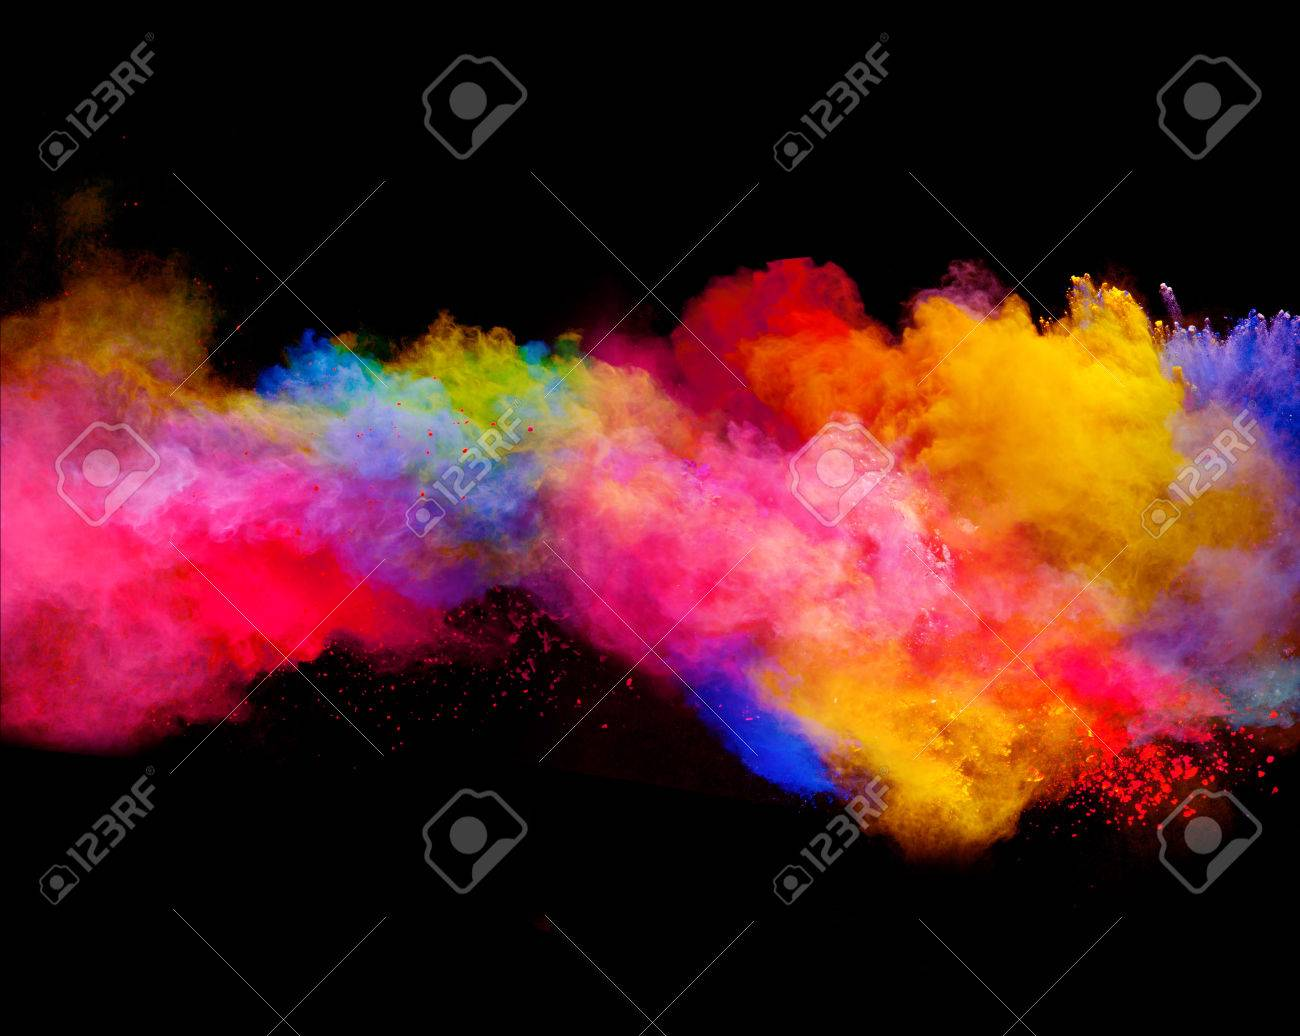 Explosion of colored powder, isolated on black background - 53581546